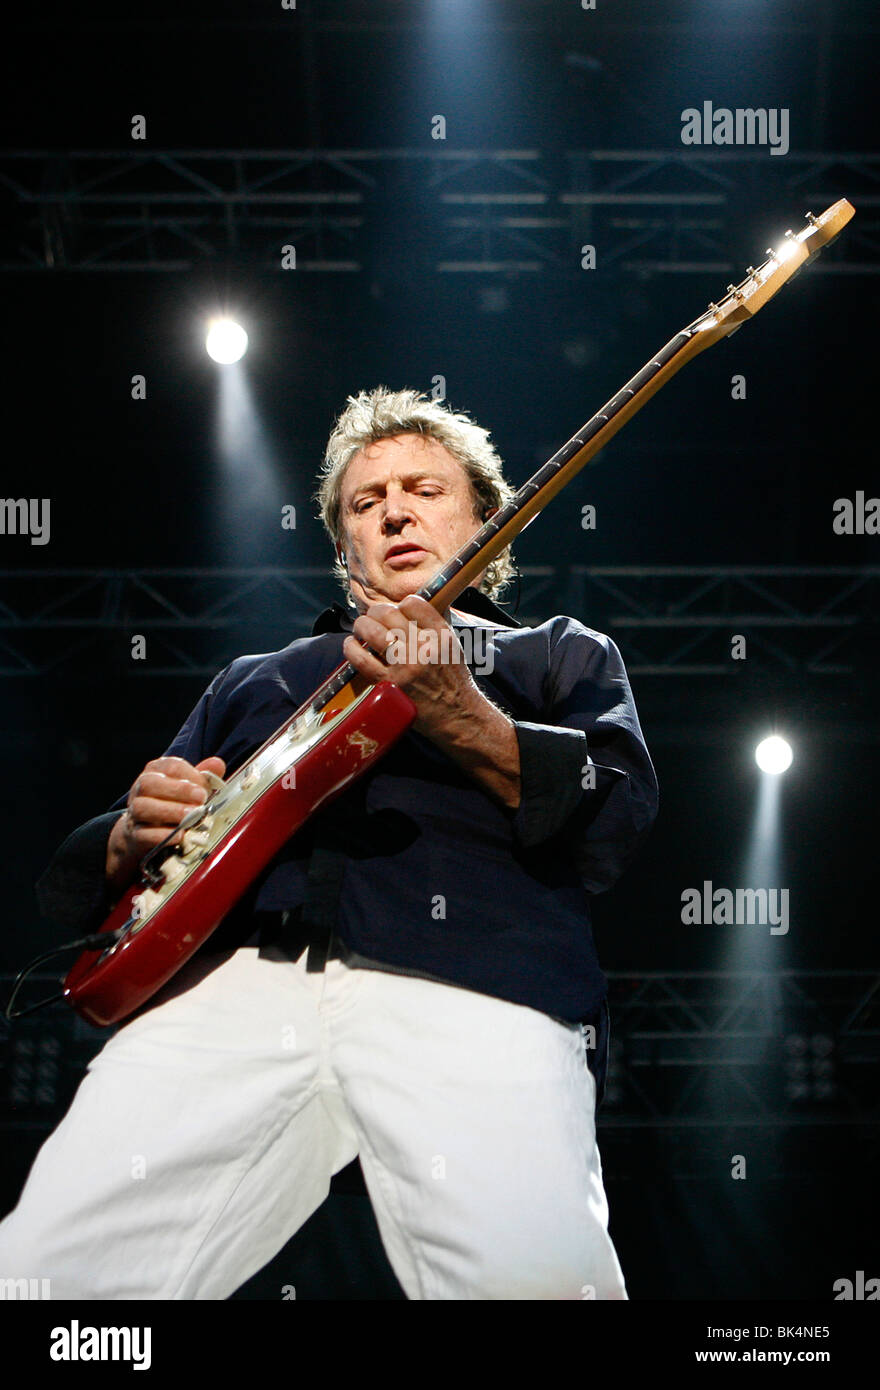 Guitarist Andy Summers of The Police performs at the Virgin Music Festival. - Stock Image